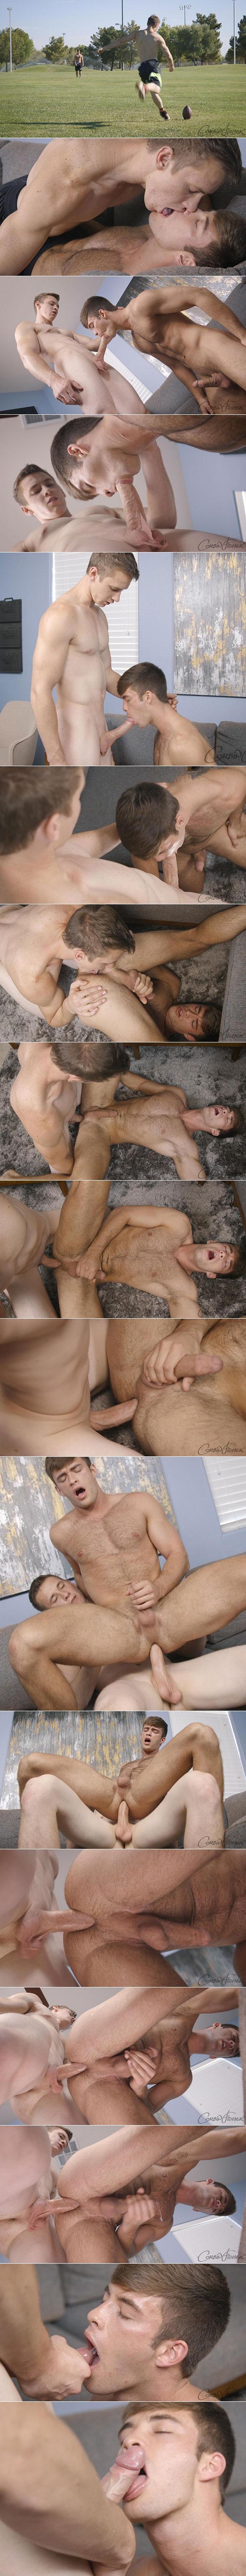 Corbin Fisher: Rocky fucks Beau's virgin ass